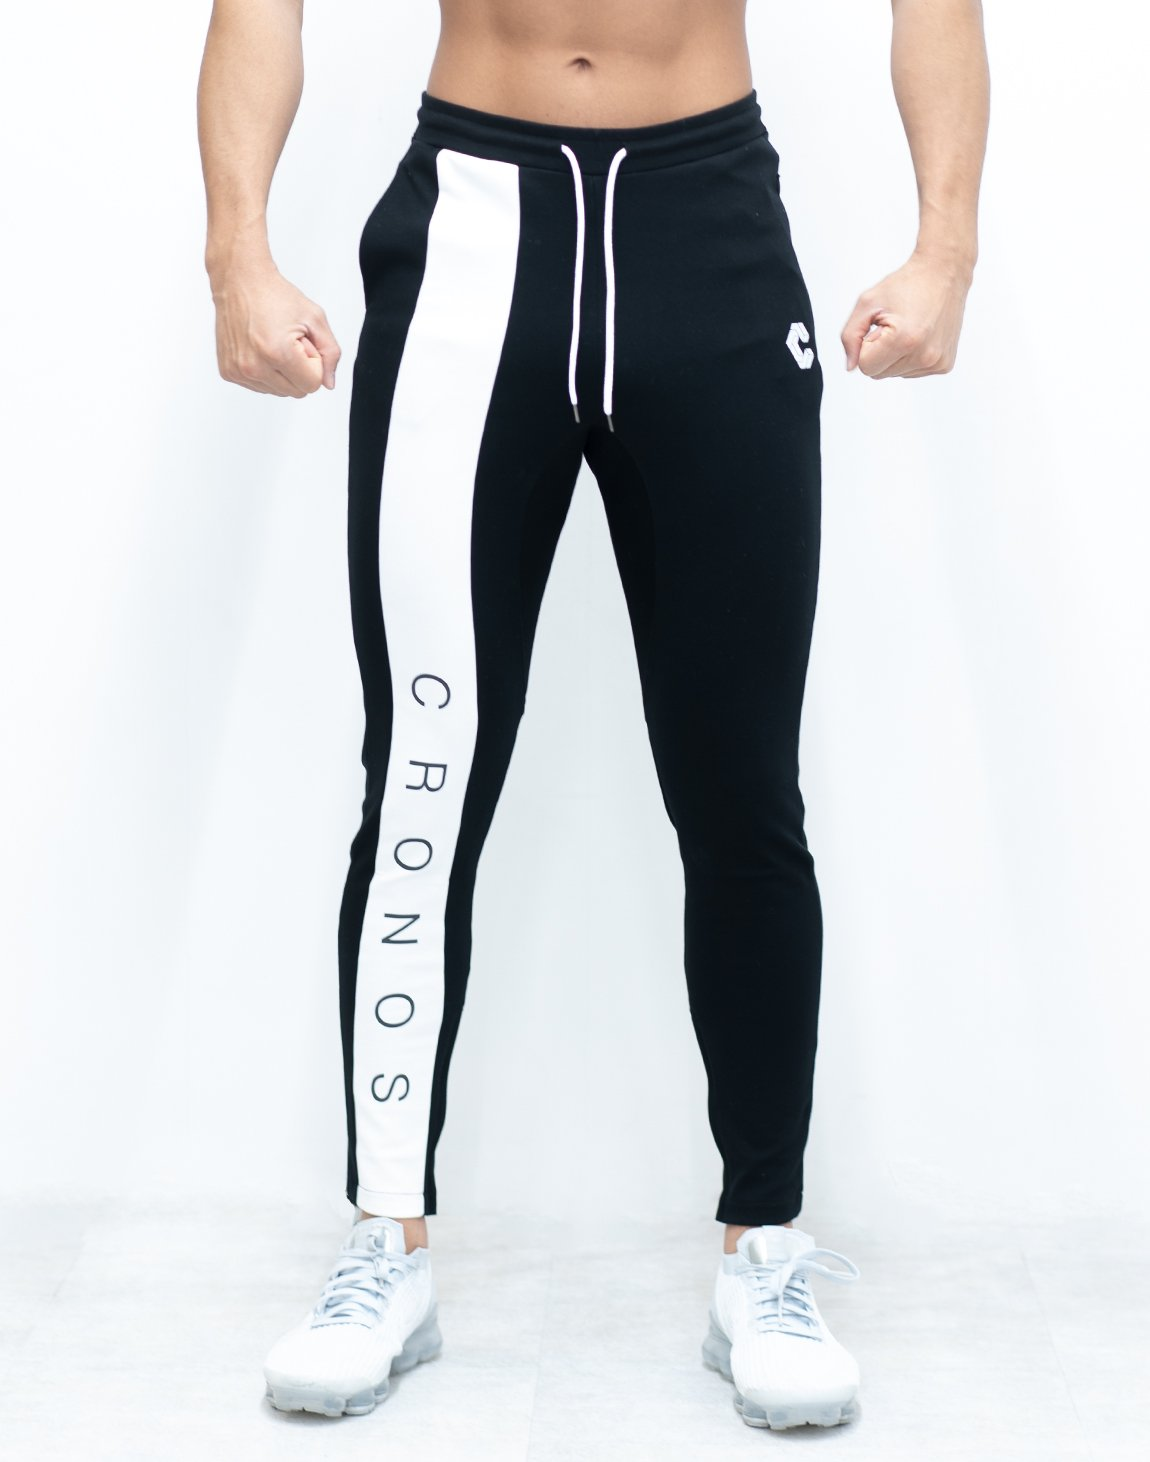 <img class='new_mark_img1' src='https://img.shop-pro.jp/img/new/icons1.gif' style='border:none;display:inline;margin:0px;padding:0px;width:auto;' />CRONOS NEW LINE PANTS 【BLACK×WHITE】